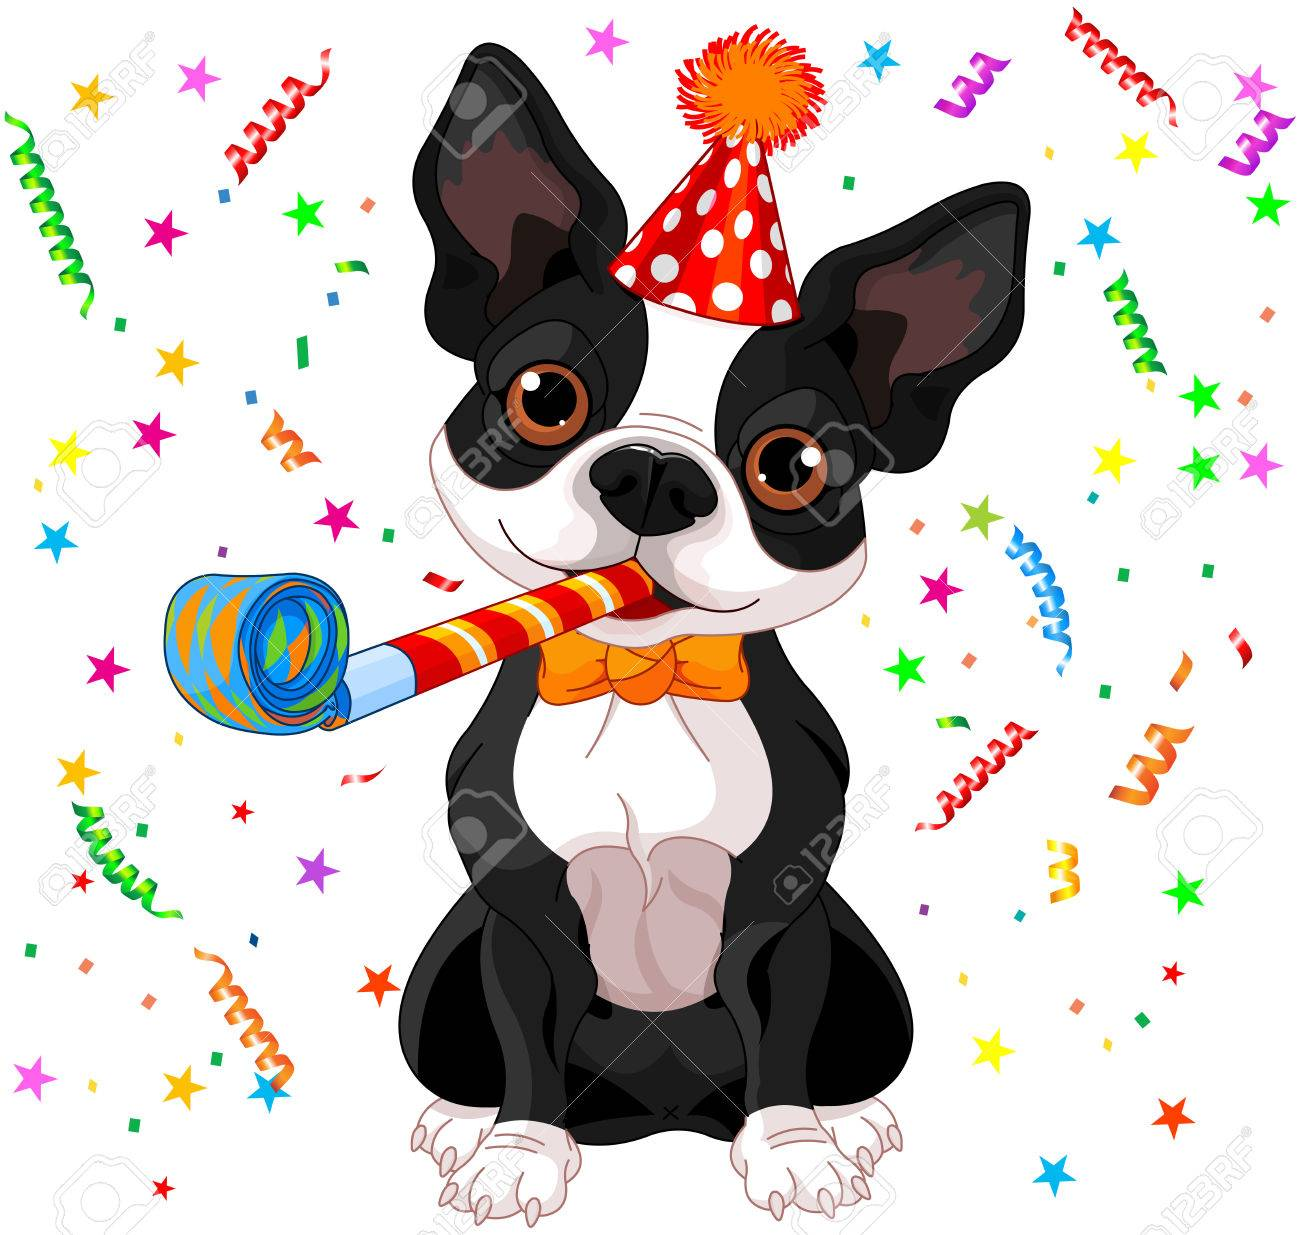 Attachement & détachement 35588778-illustration-of-cute-boston-terrier-celebrating